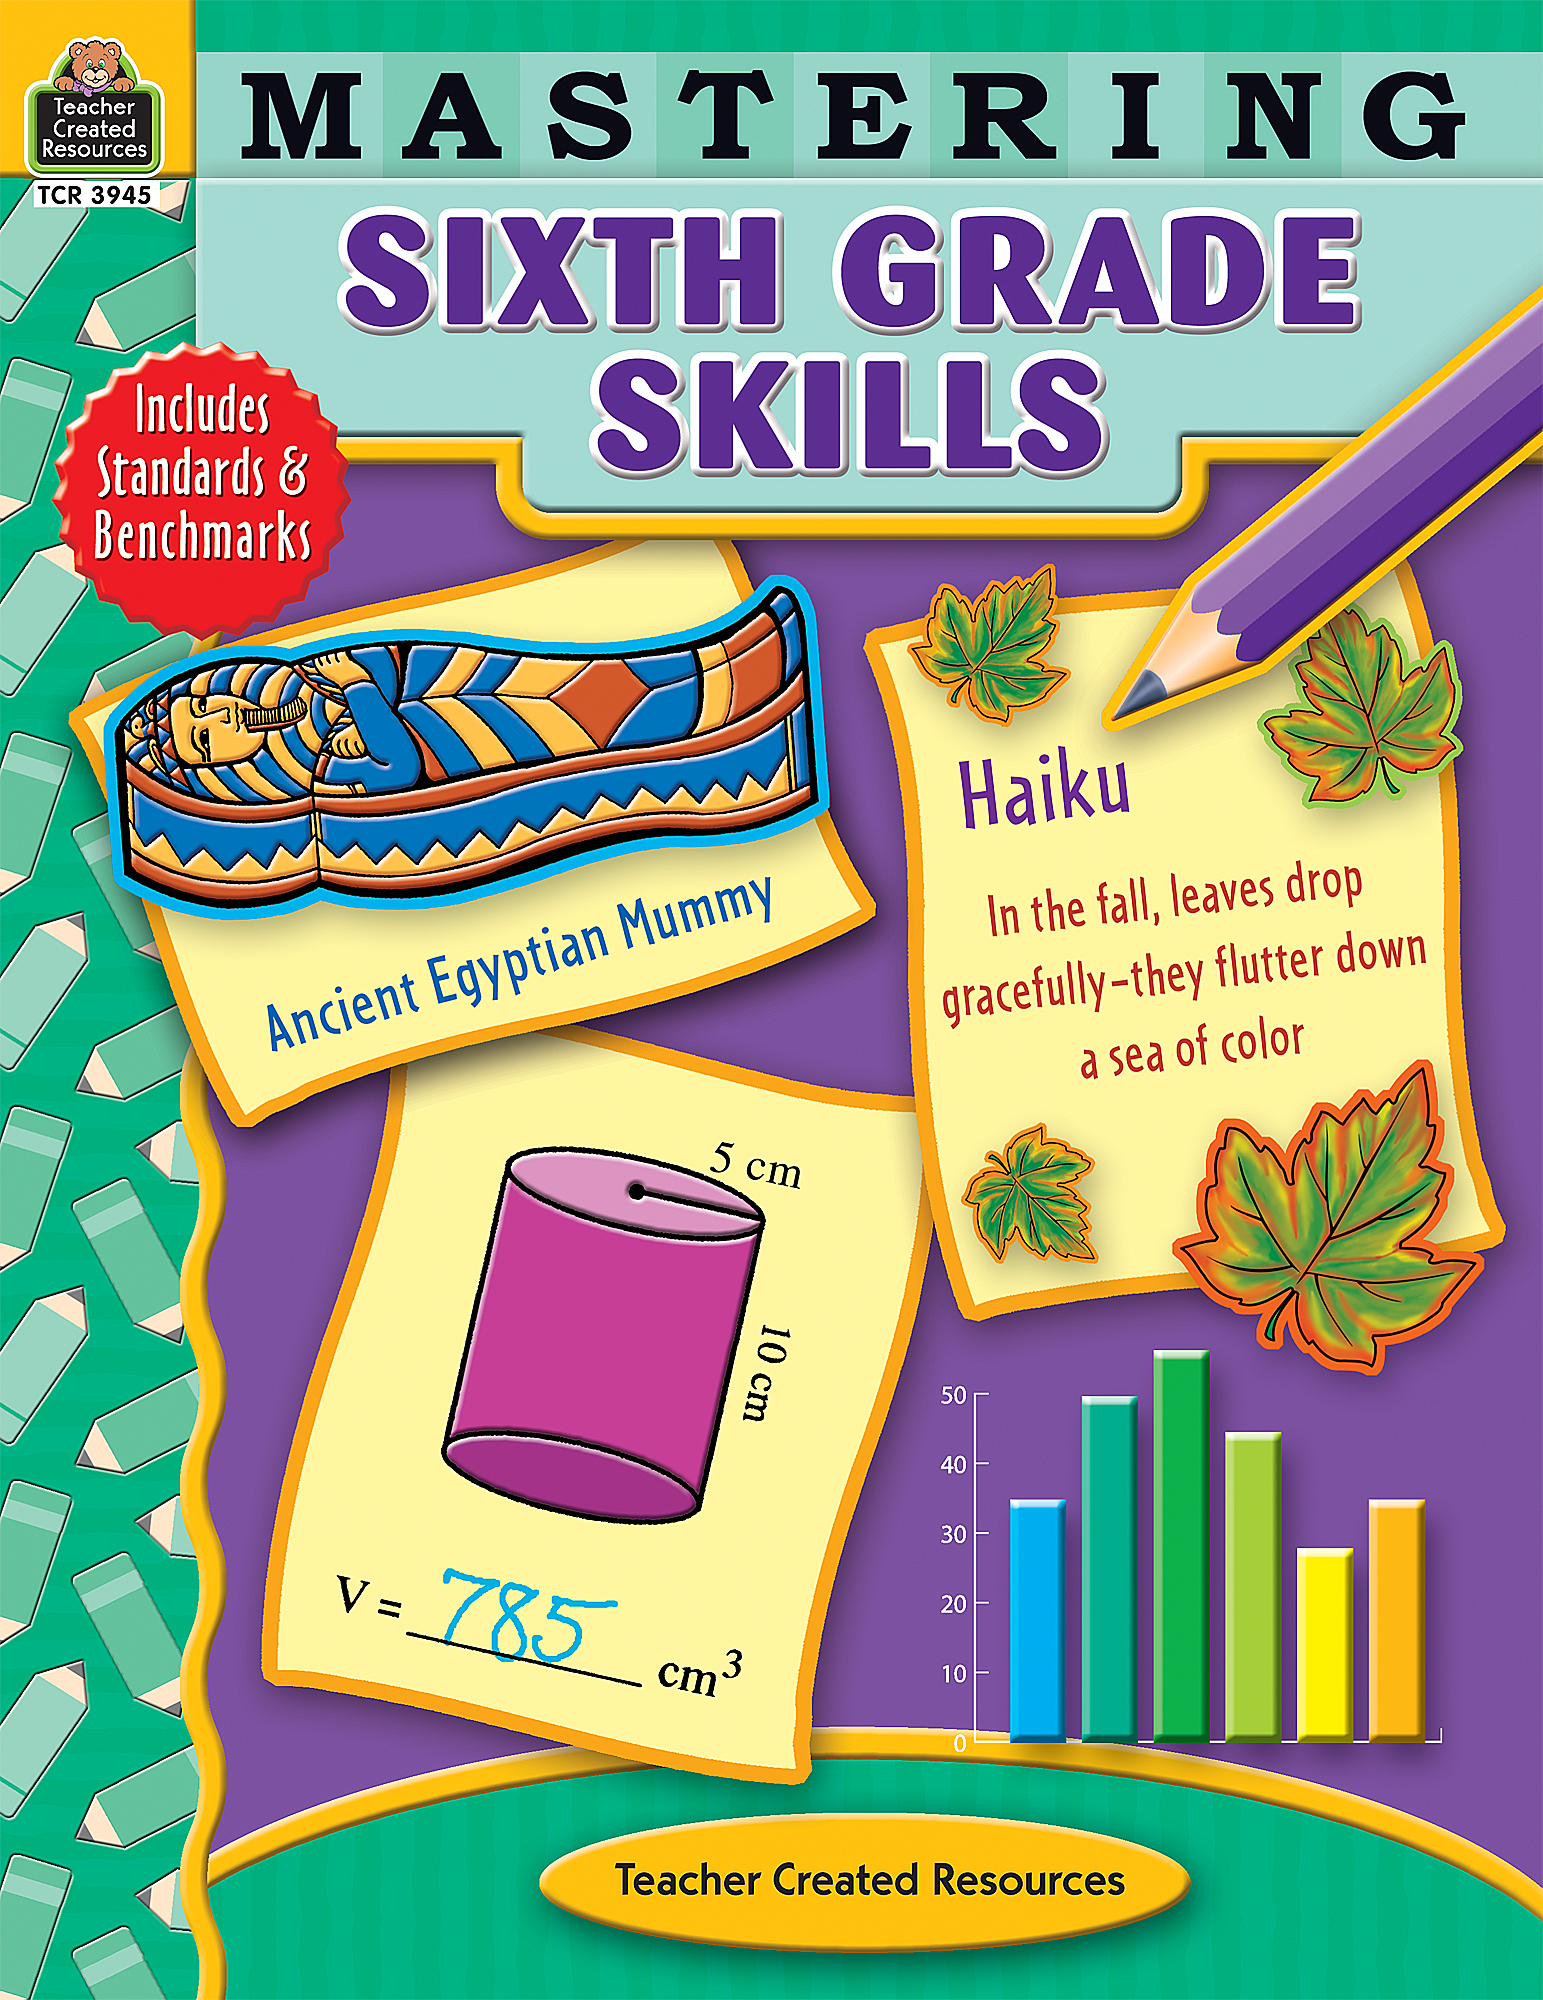 Mastering Sixth Grade Skills - TCR3945 | Teacher Created Resources